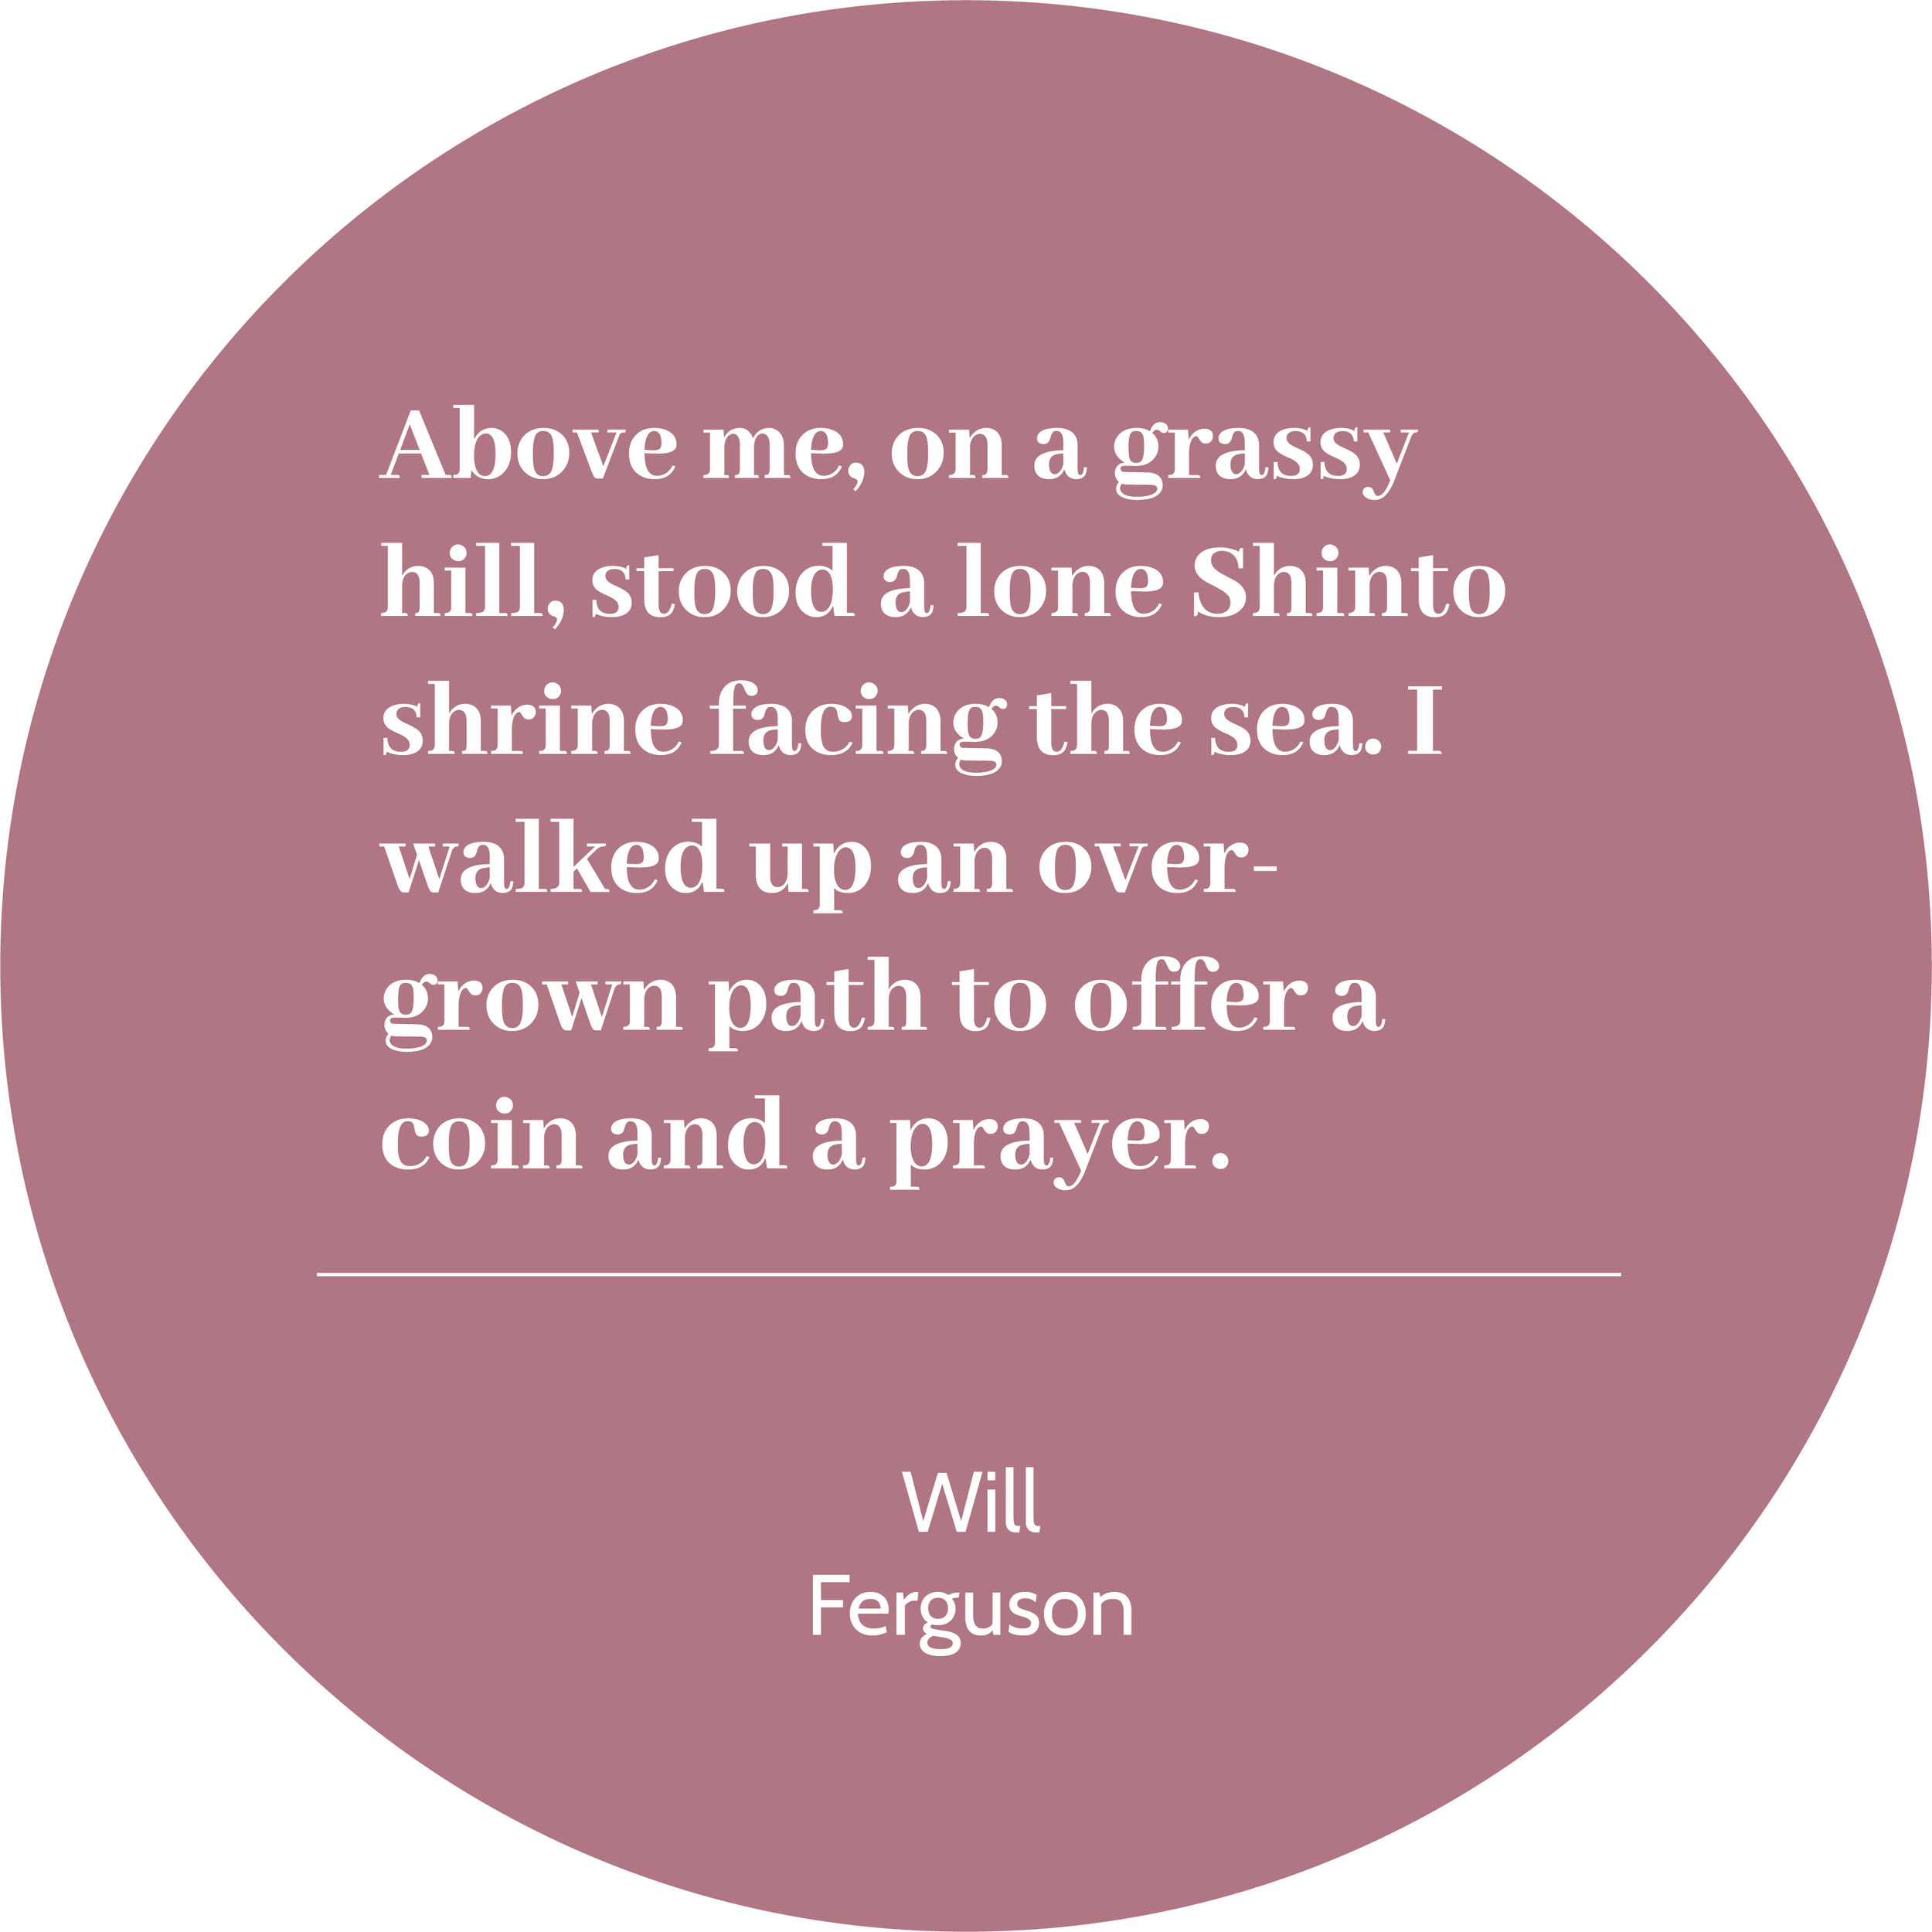 Will Ferguson quote 5 2019.04.24.png